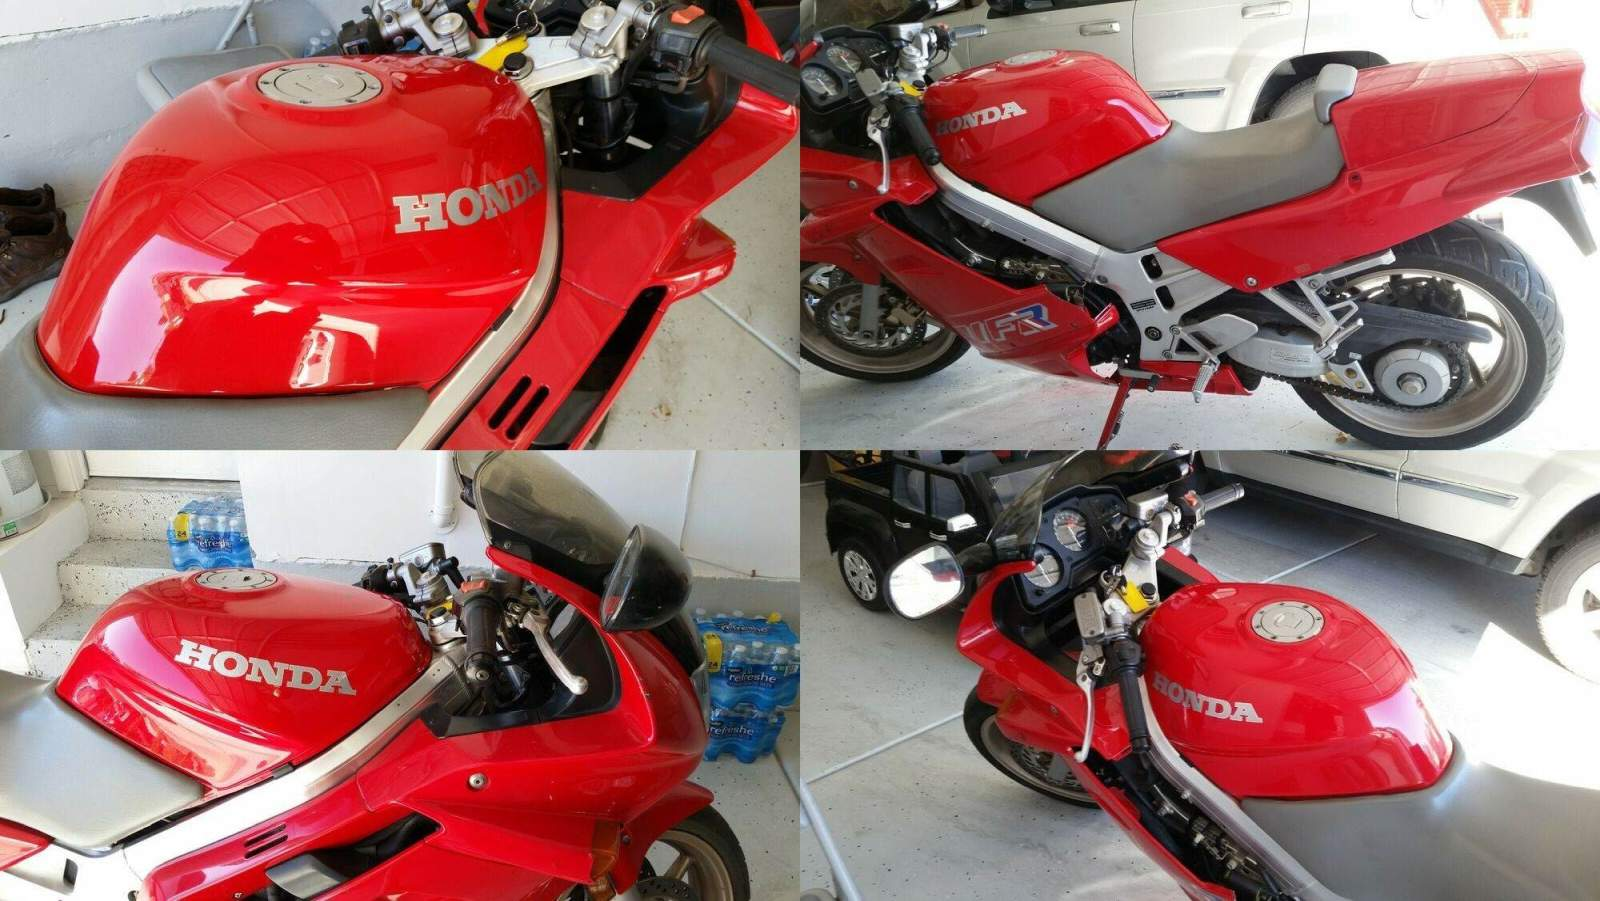 1991 Honda Vfr 750 Red used for sale craigslist